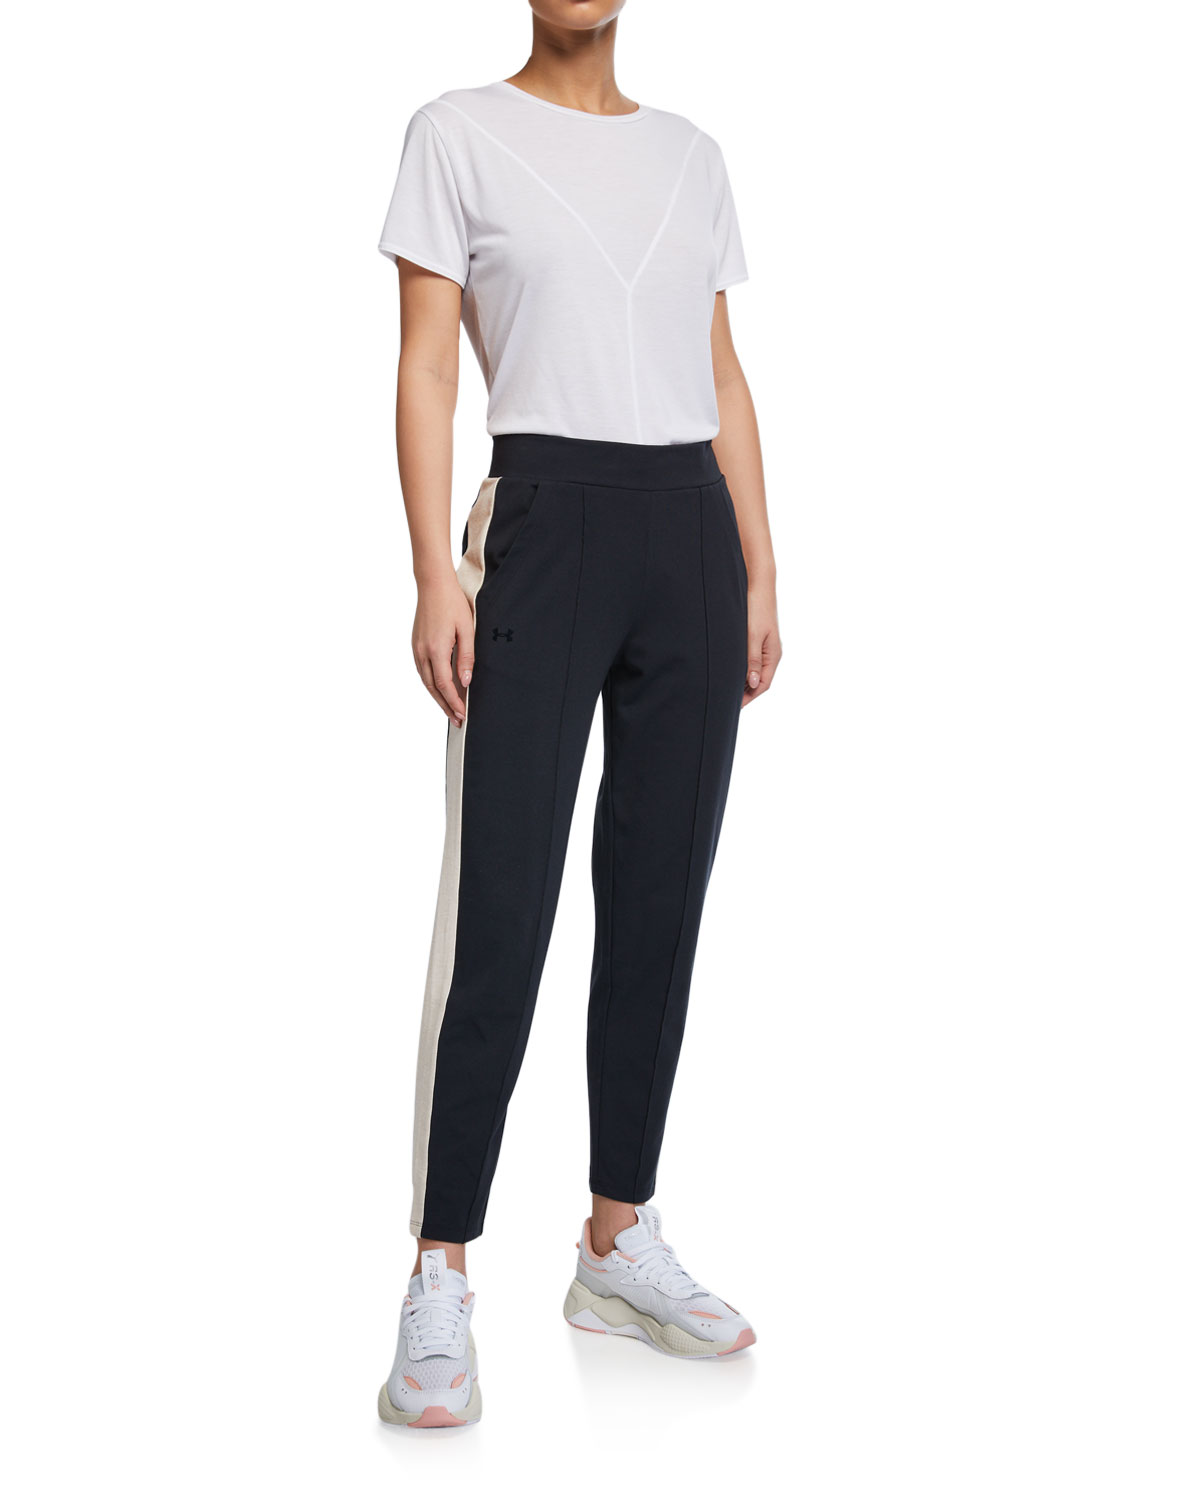 Under Armour Pants FAVORITE LOOSE TAPERED PANT